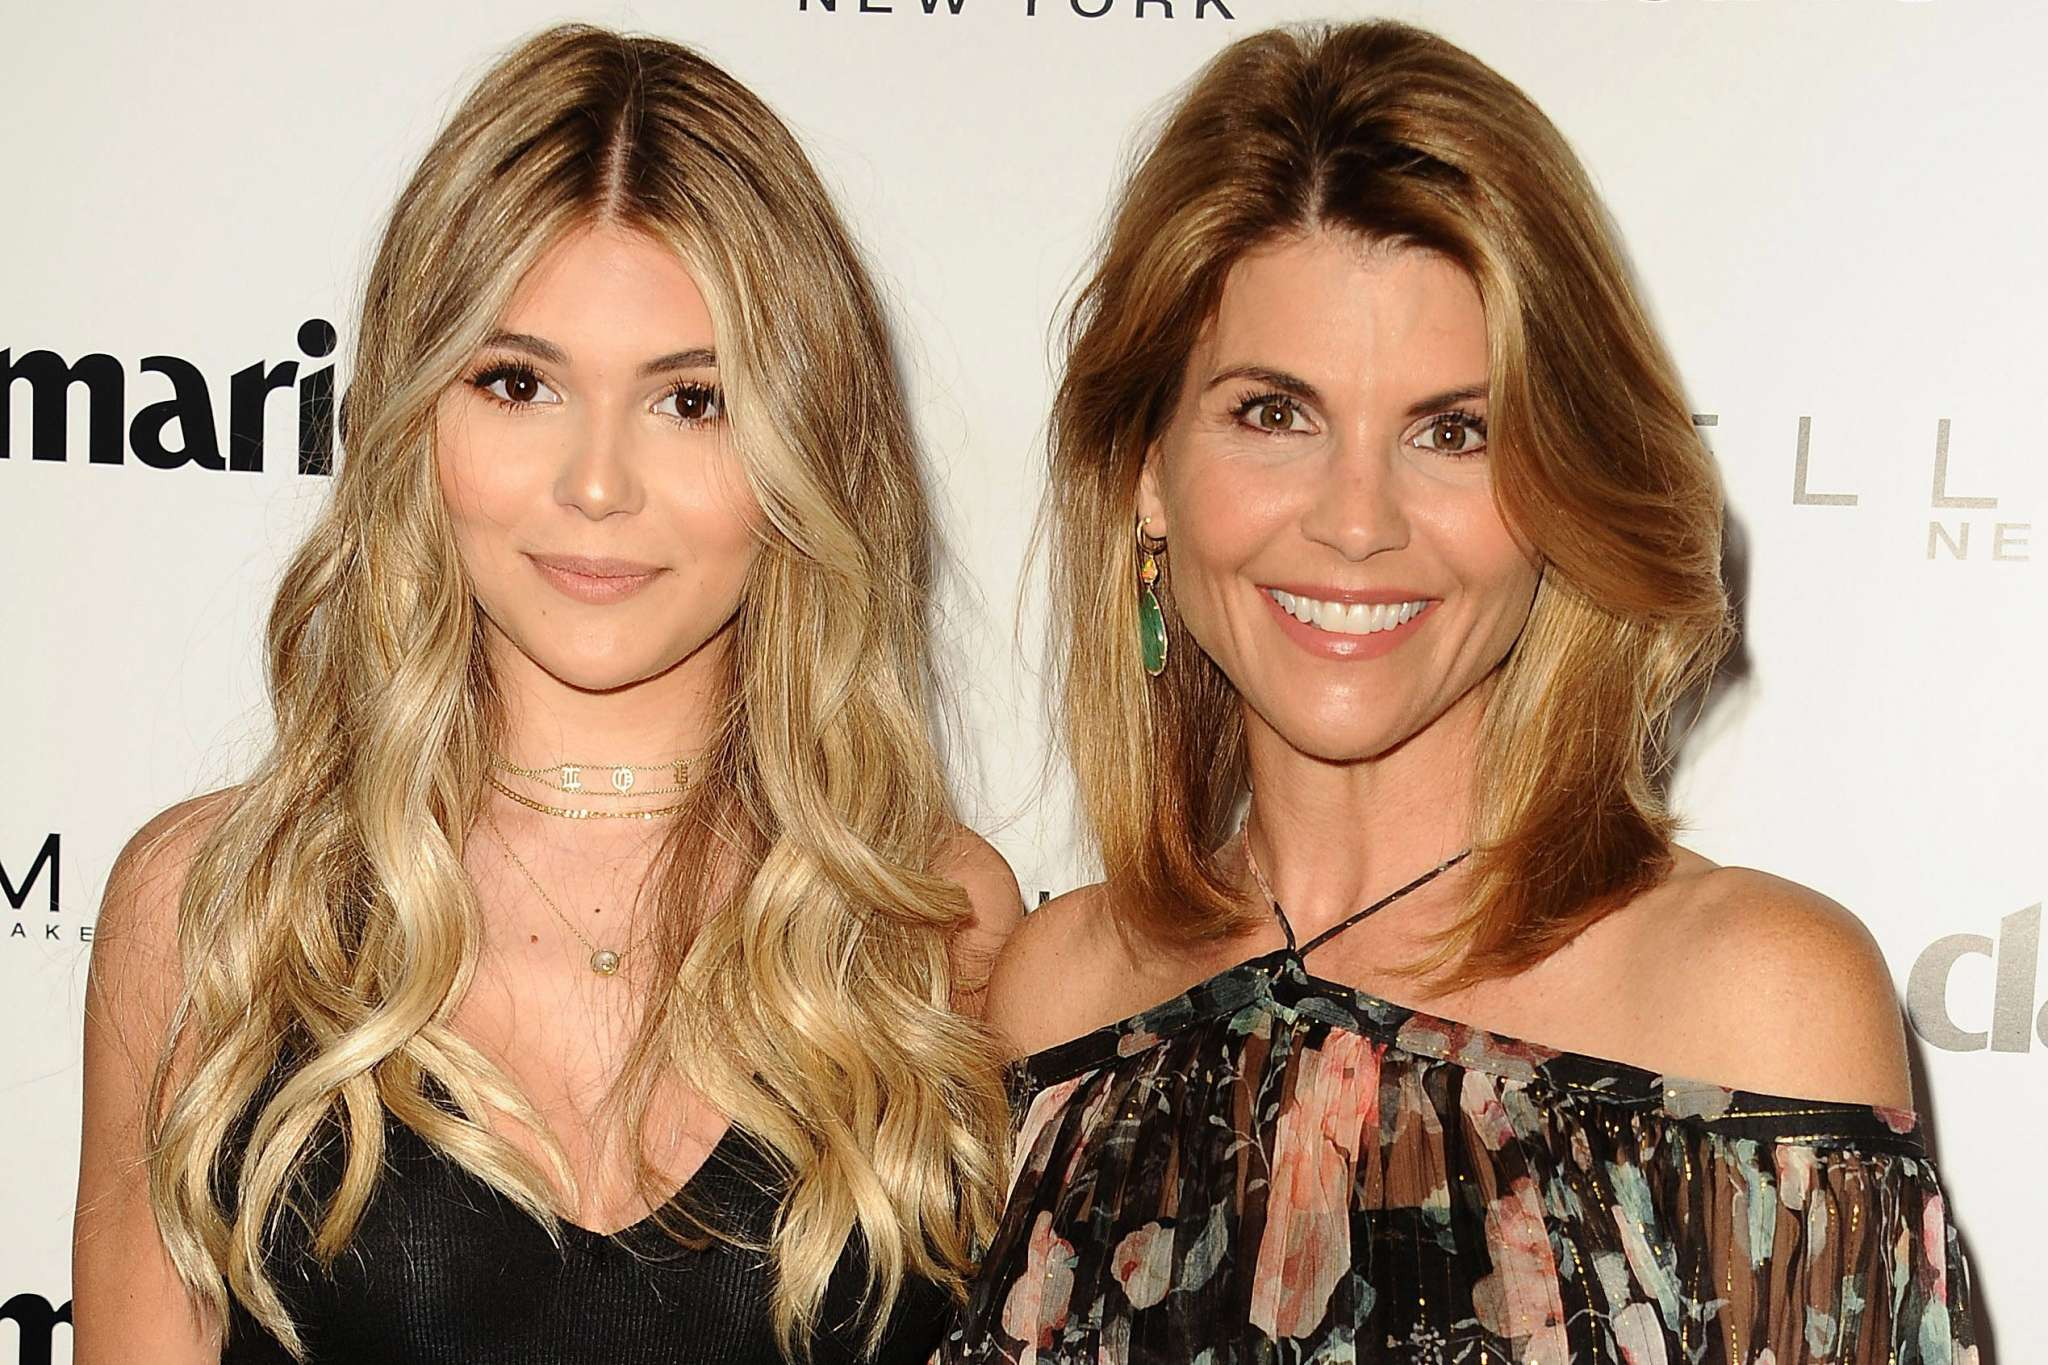 lori-loughlin-reportedly-proud-of-daughter-olivia-jade-for-being-so-open-about-dealing-with-public-shame-after-college-scandal